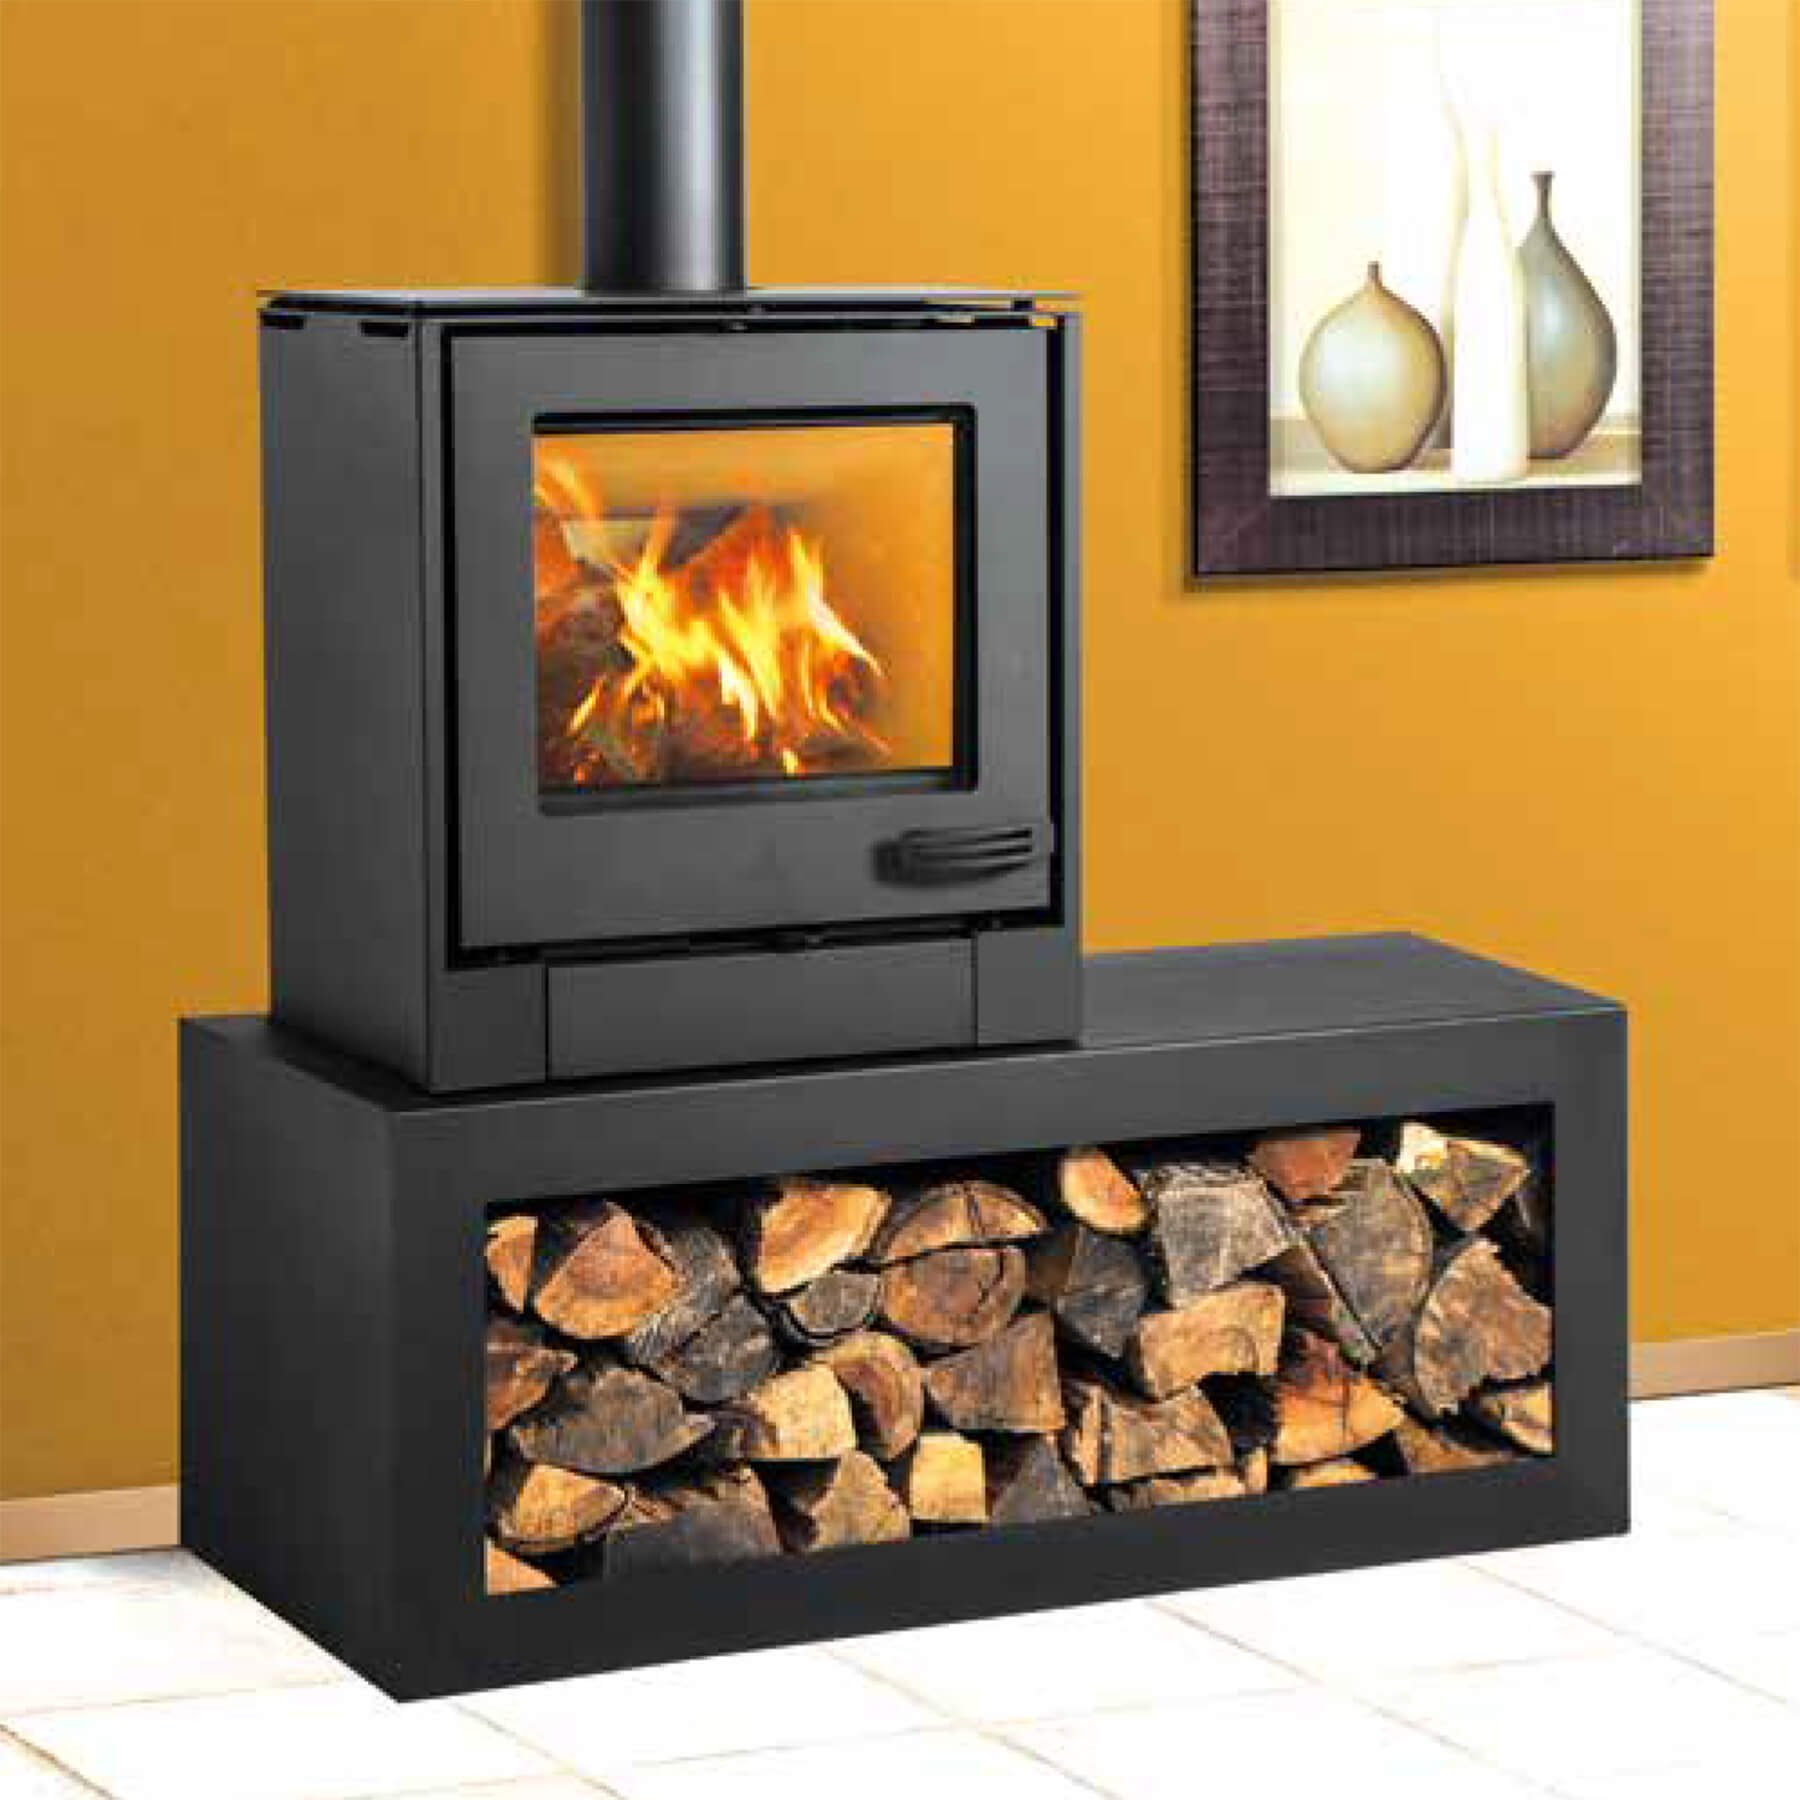 Combustion-Fireplaces-Freetanding-8kw-Convection-Unit-Wood-Storage-Table-Environment